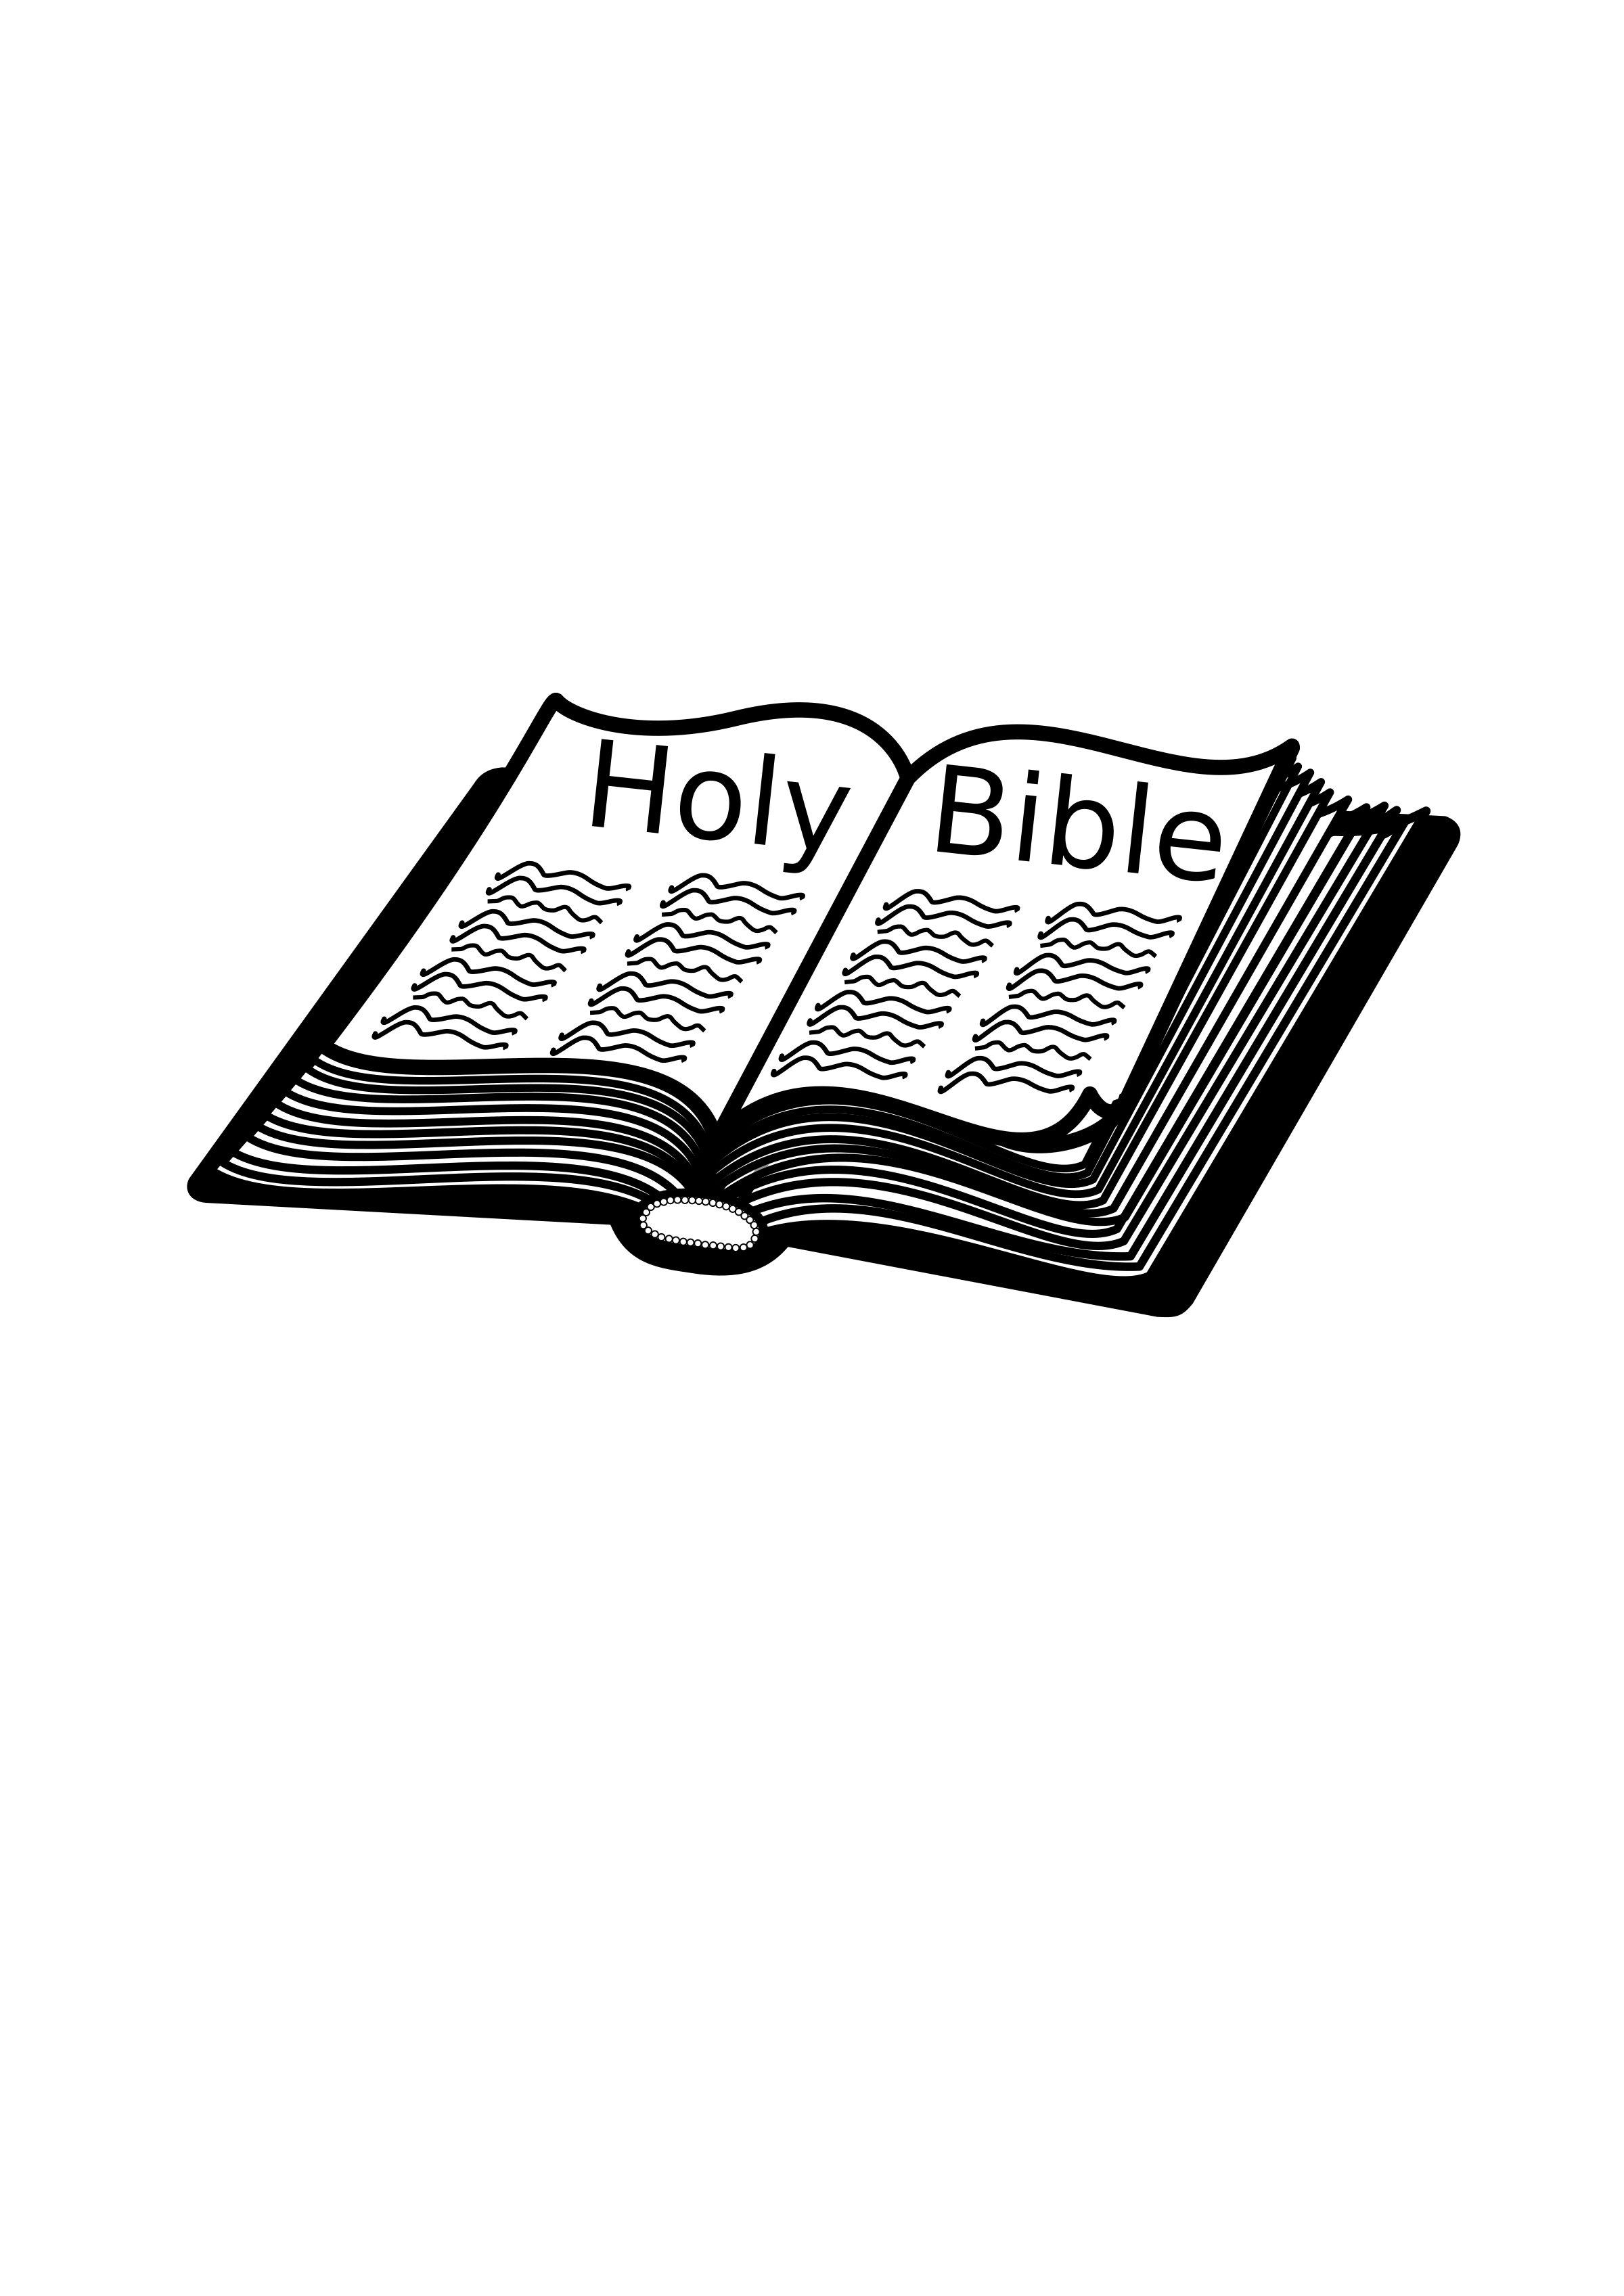 Bible svg holy. Icons png free and